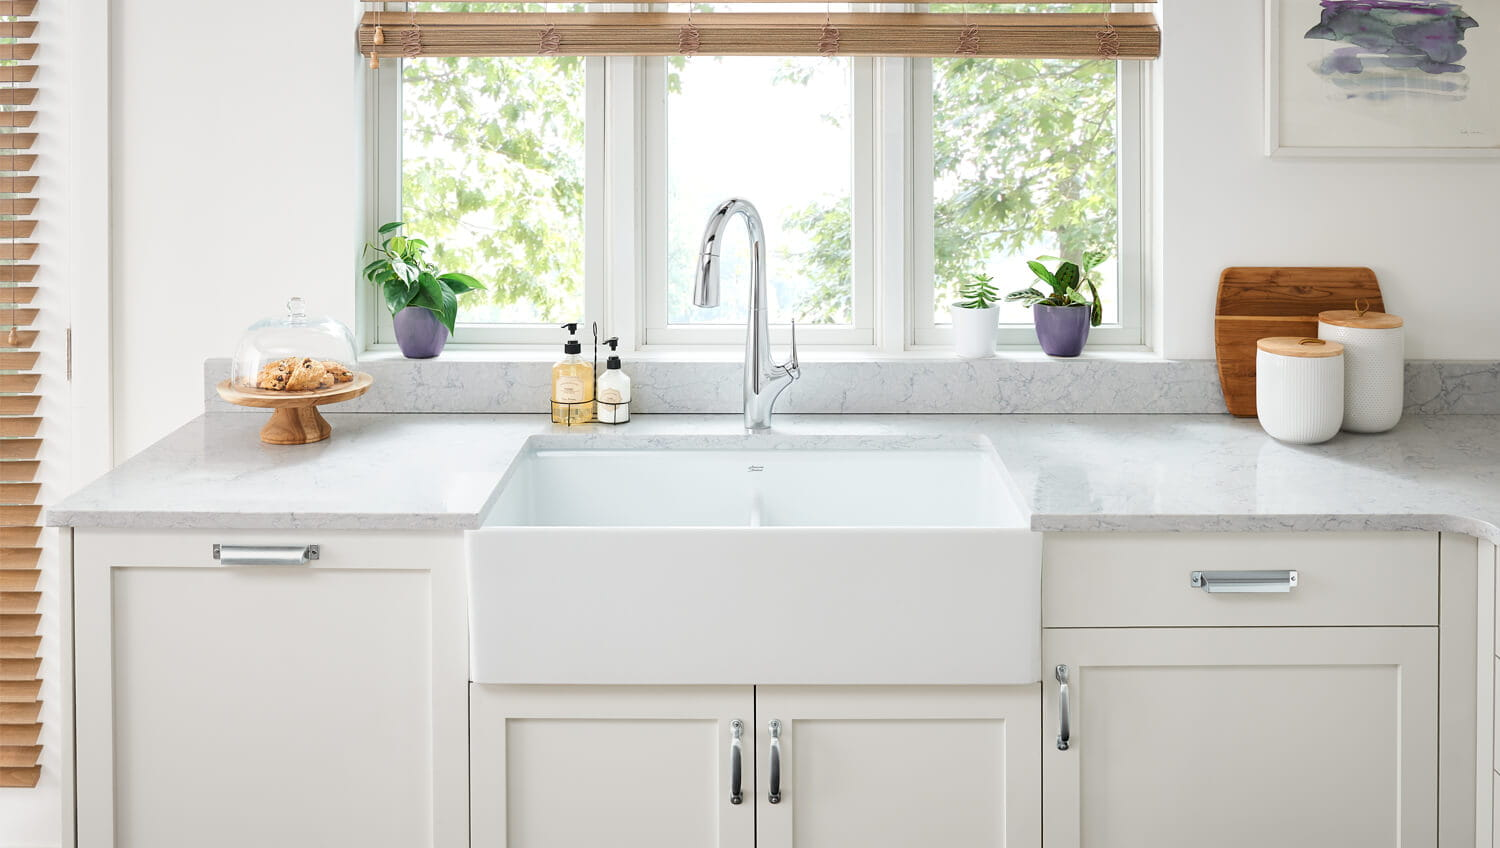 Avery Kitchen Collection of Faucets and Sinks